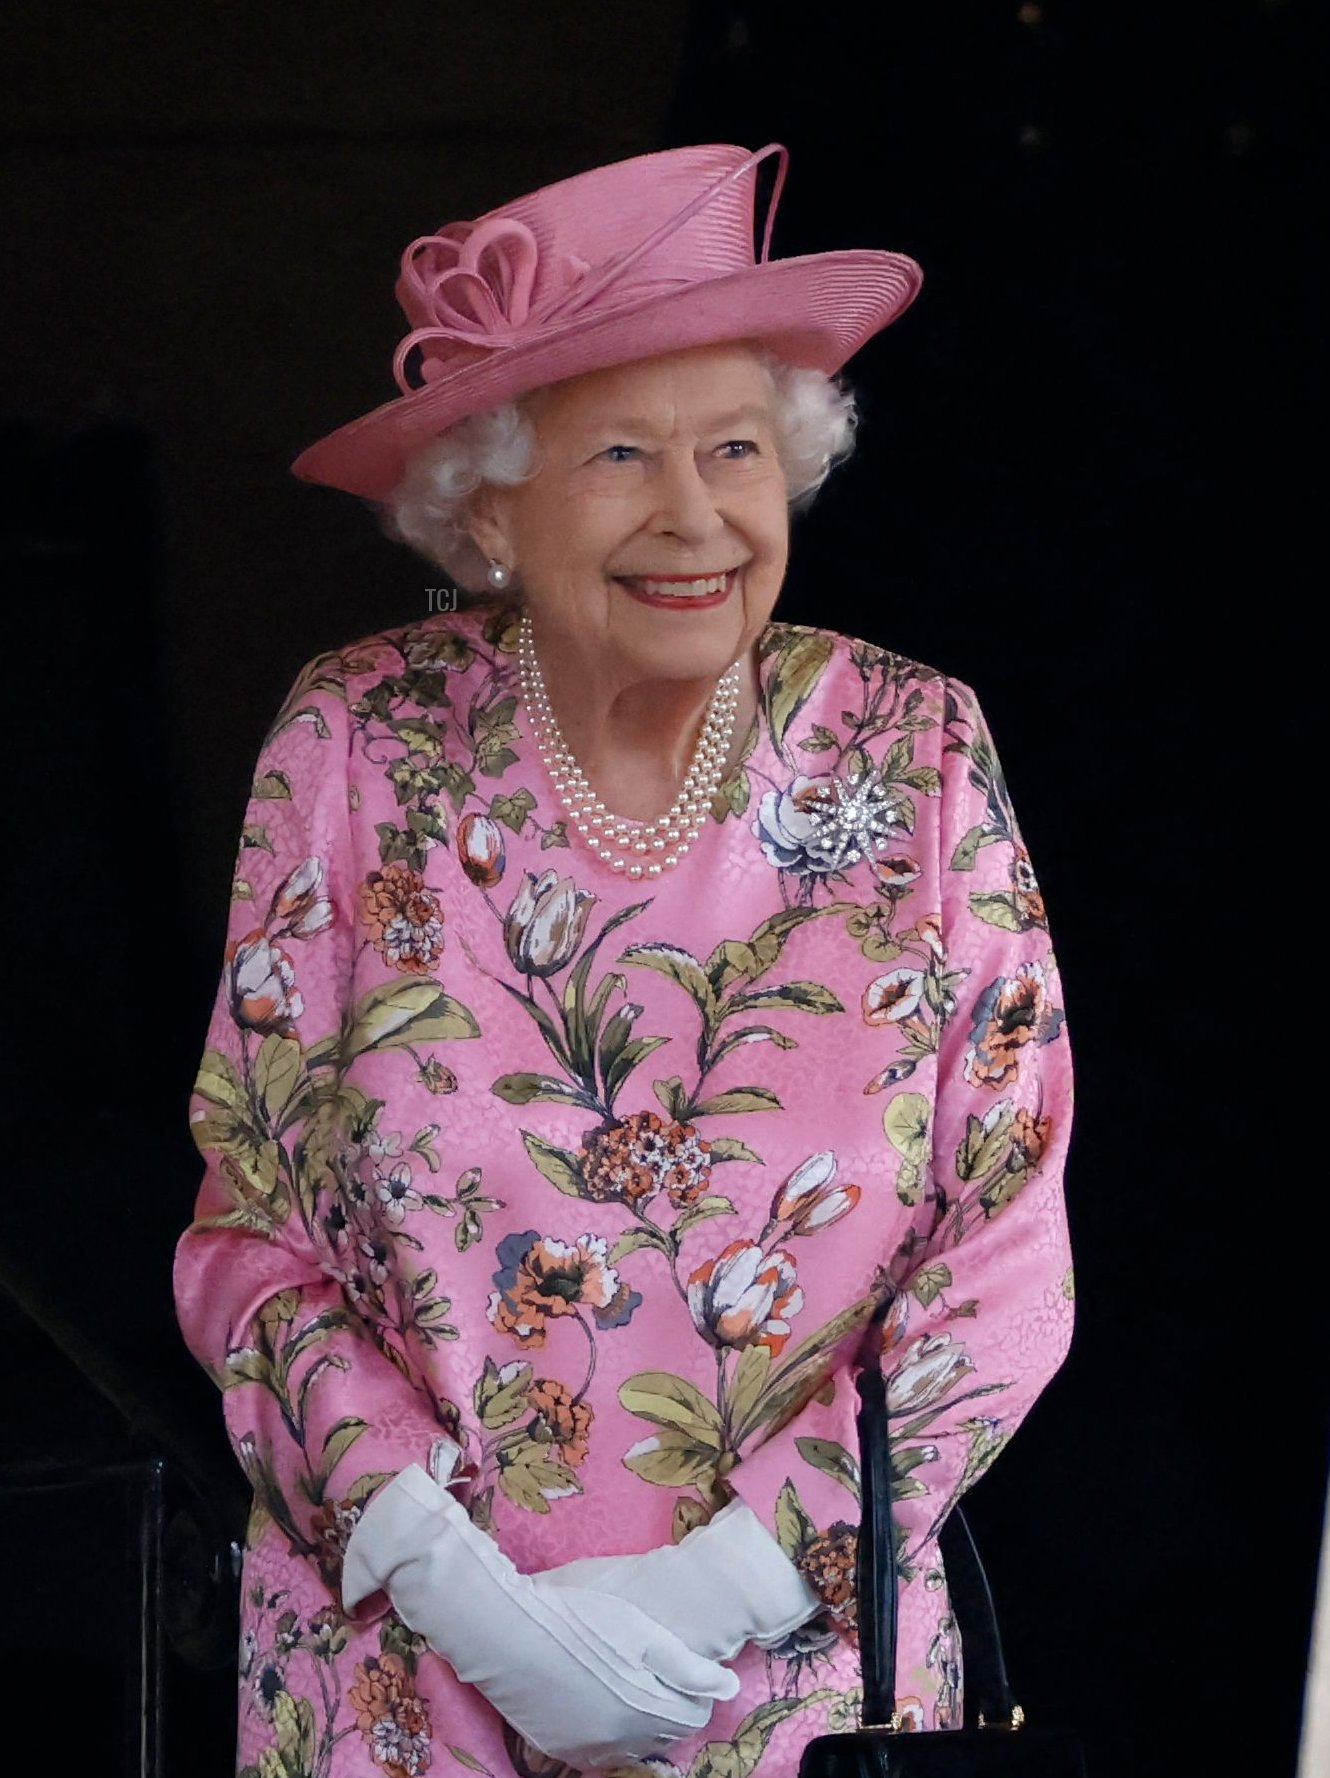 Britain's Queen Elizabeth II (R) waits to greet US President Joe Biden and US First Lady Jill Biden at Windsor Castle in Windsor, west of London, on June 13, 2021 for an engagement with Britain's Queen Elizabeth II. - US president Biden will visit Windsor Castle late Sunday, where he and First Lady Jill Biden will take tea with the queen